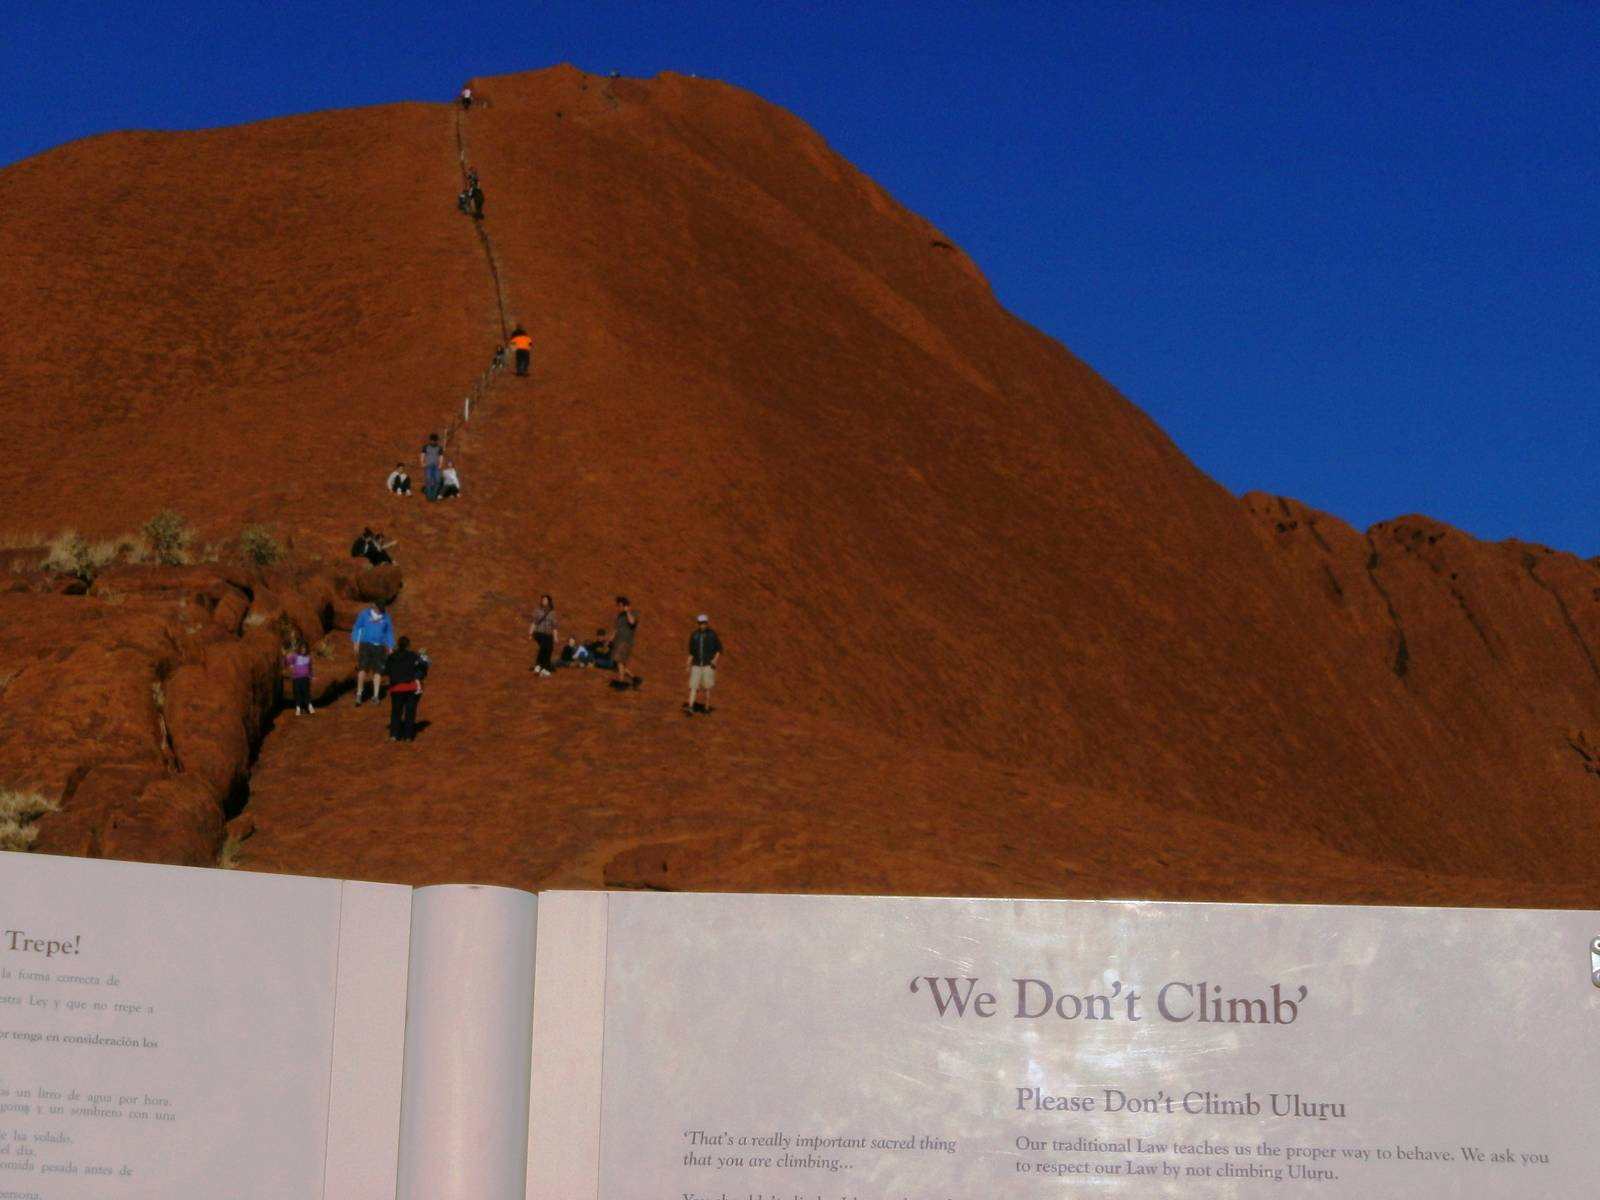 Please don't climb Uluru